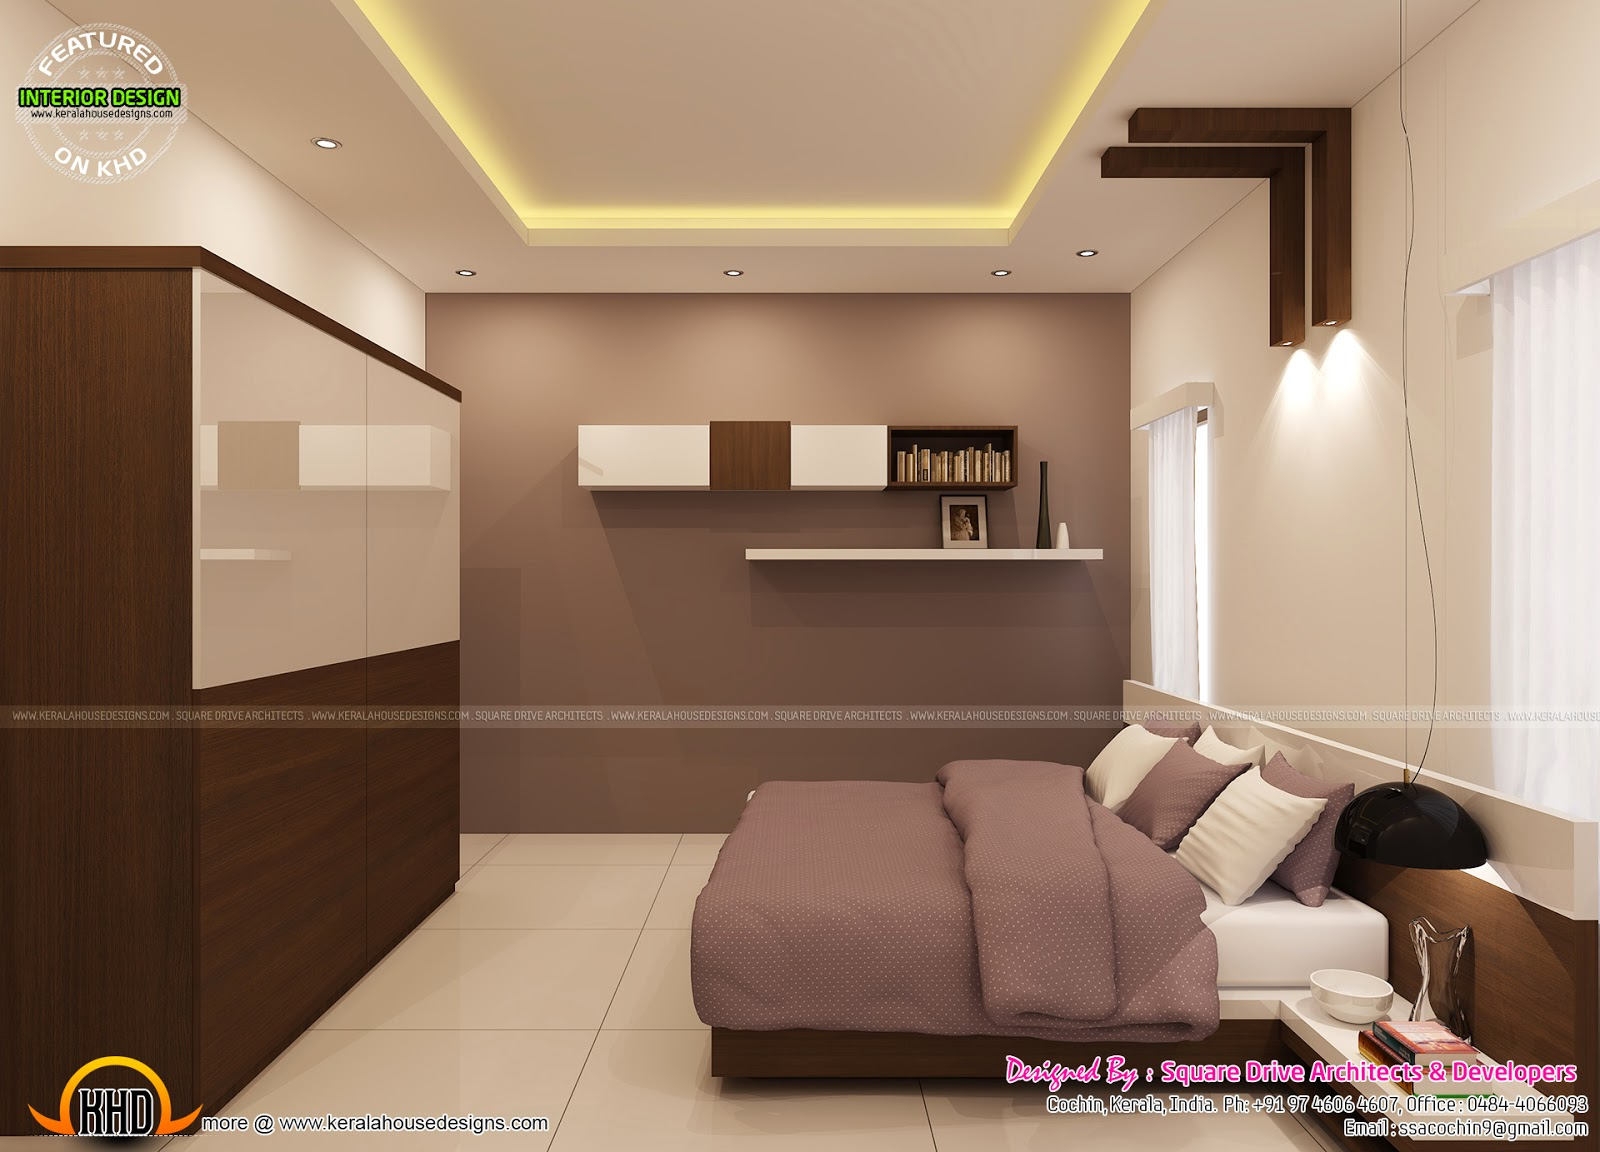 Bedroom interior decoration kerala home design and floor for 100 square feet bedroom interior